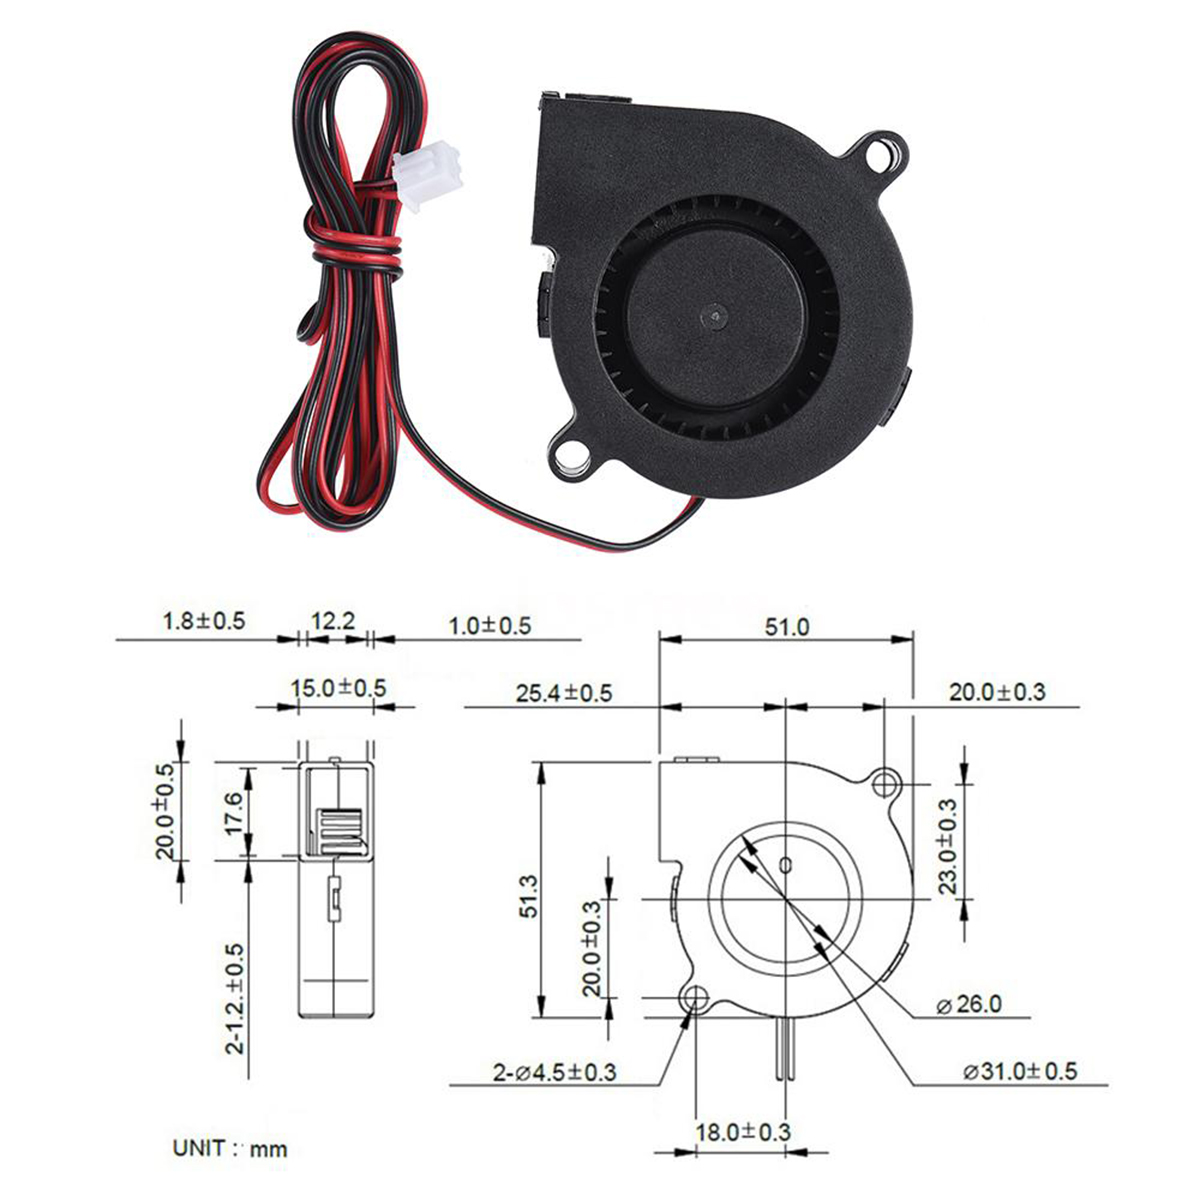 цены на 1pc DC Radial Cooling Fan 12V/24V Hot End Extruder Blow Fans 50*15mm Mayitr For 3D Printer Parts в интернет-магазинах